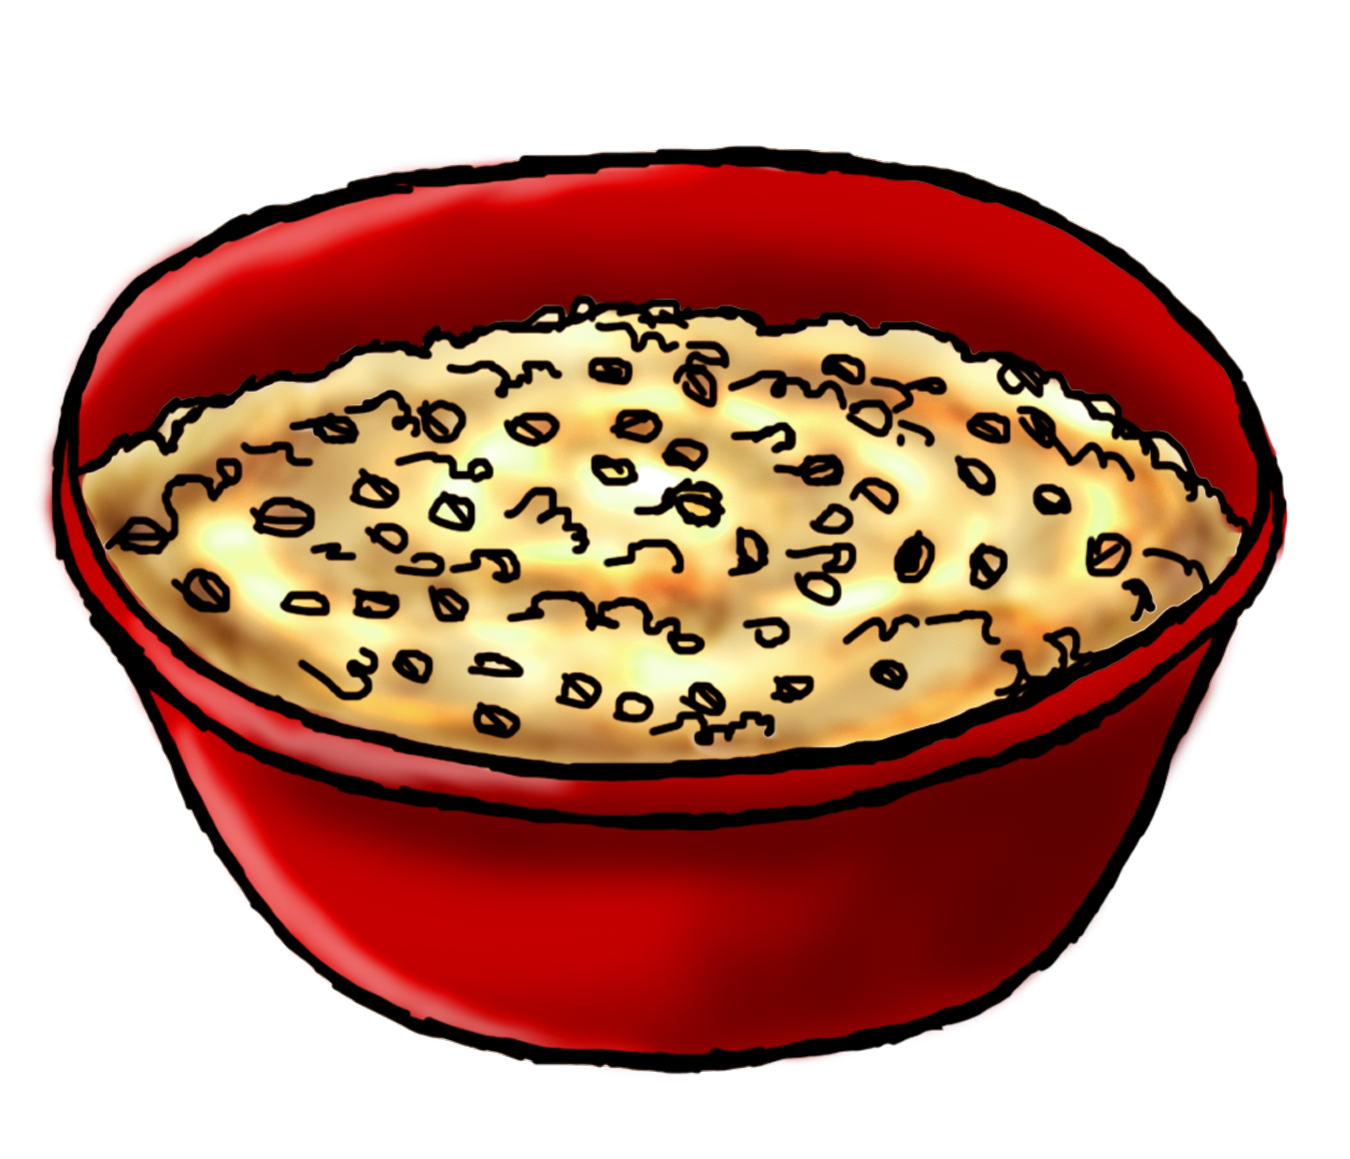 Oat clipart oatmeal Clipart collection free Oatmeal Clipart